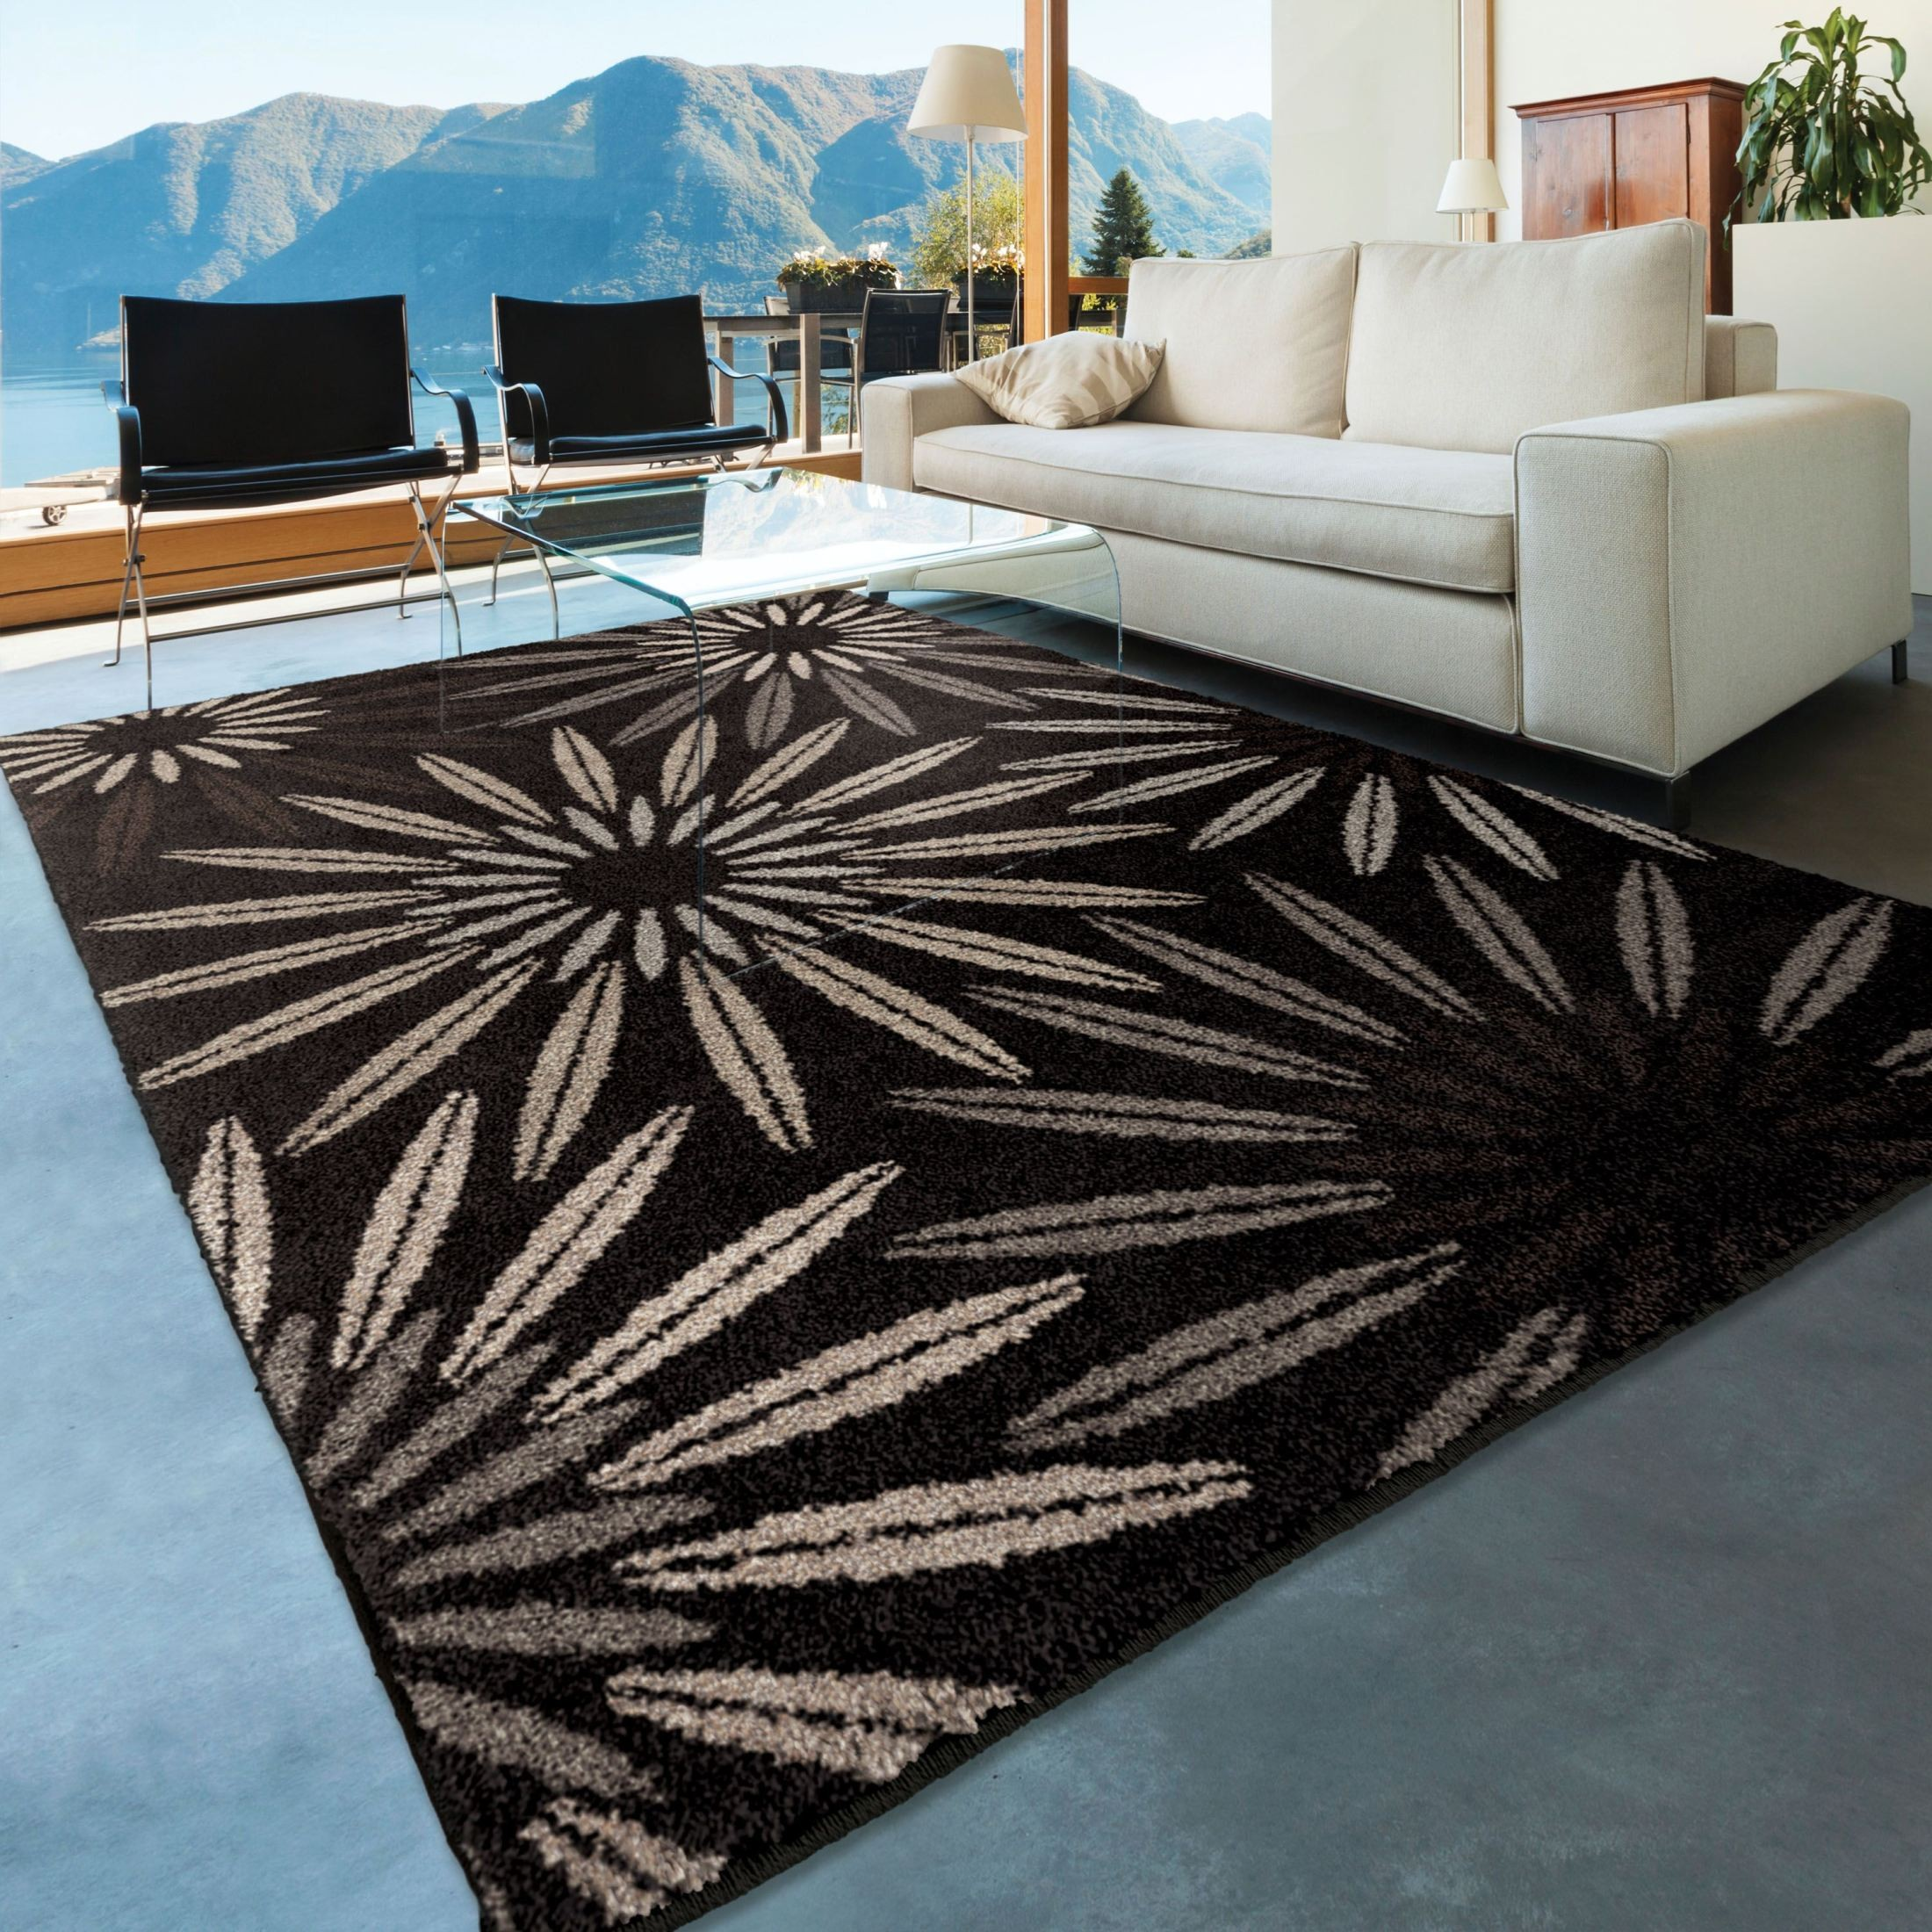 Discount 8x11 Area Rugs: American Heritage Floral Halley Black Large Area Rug From